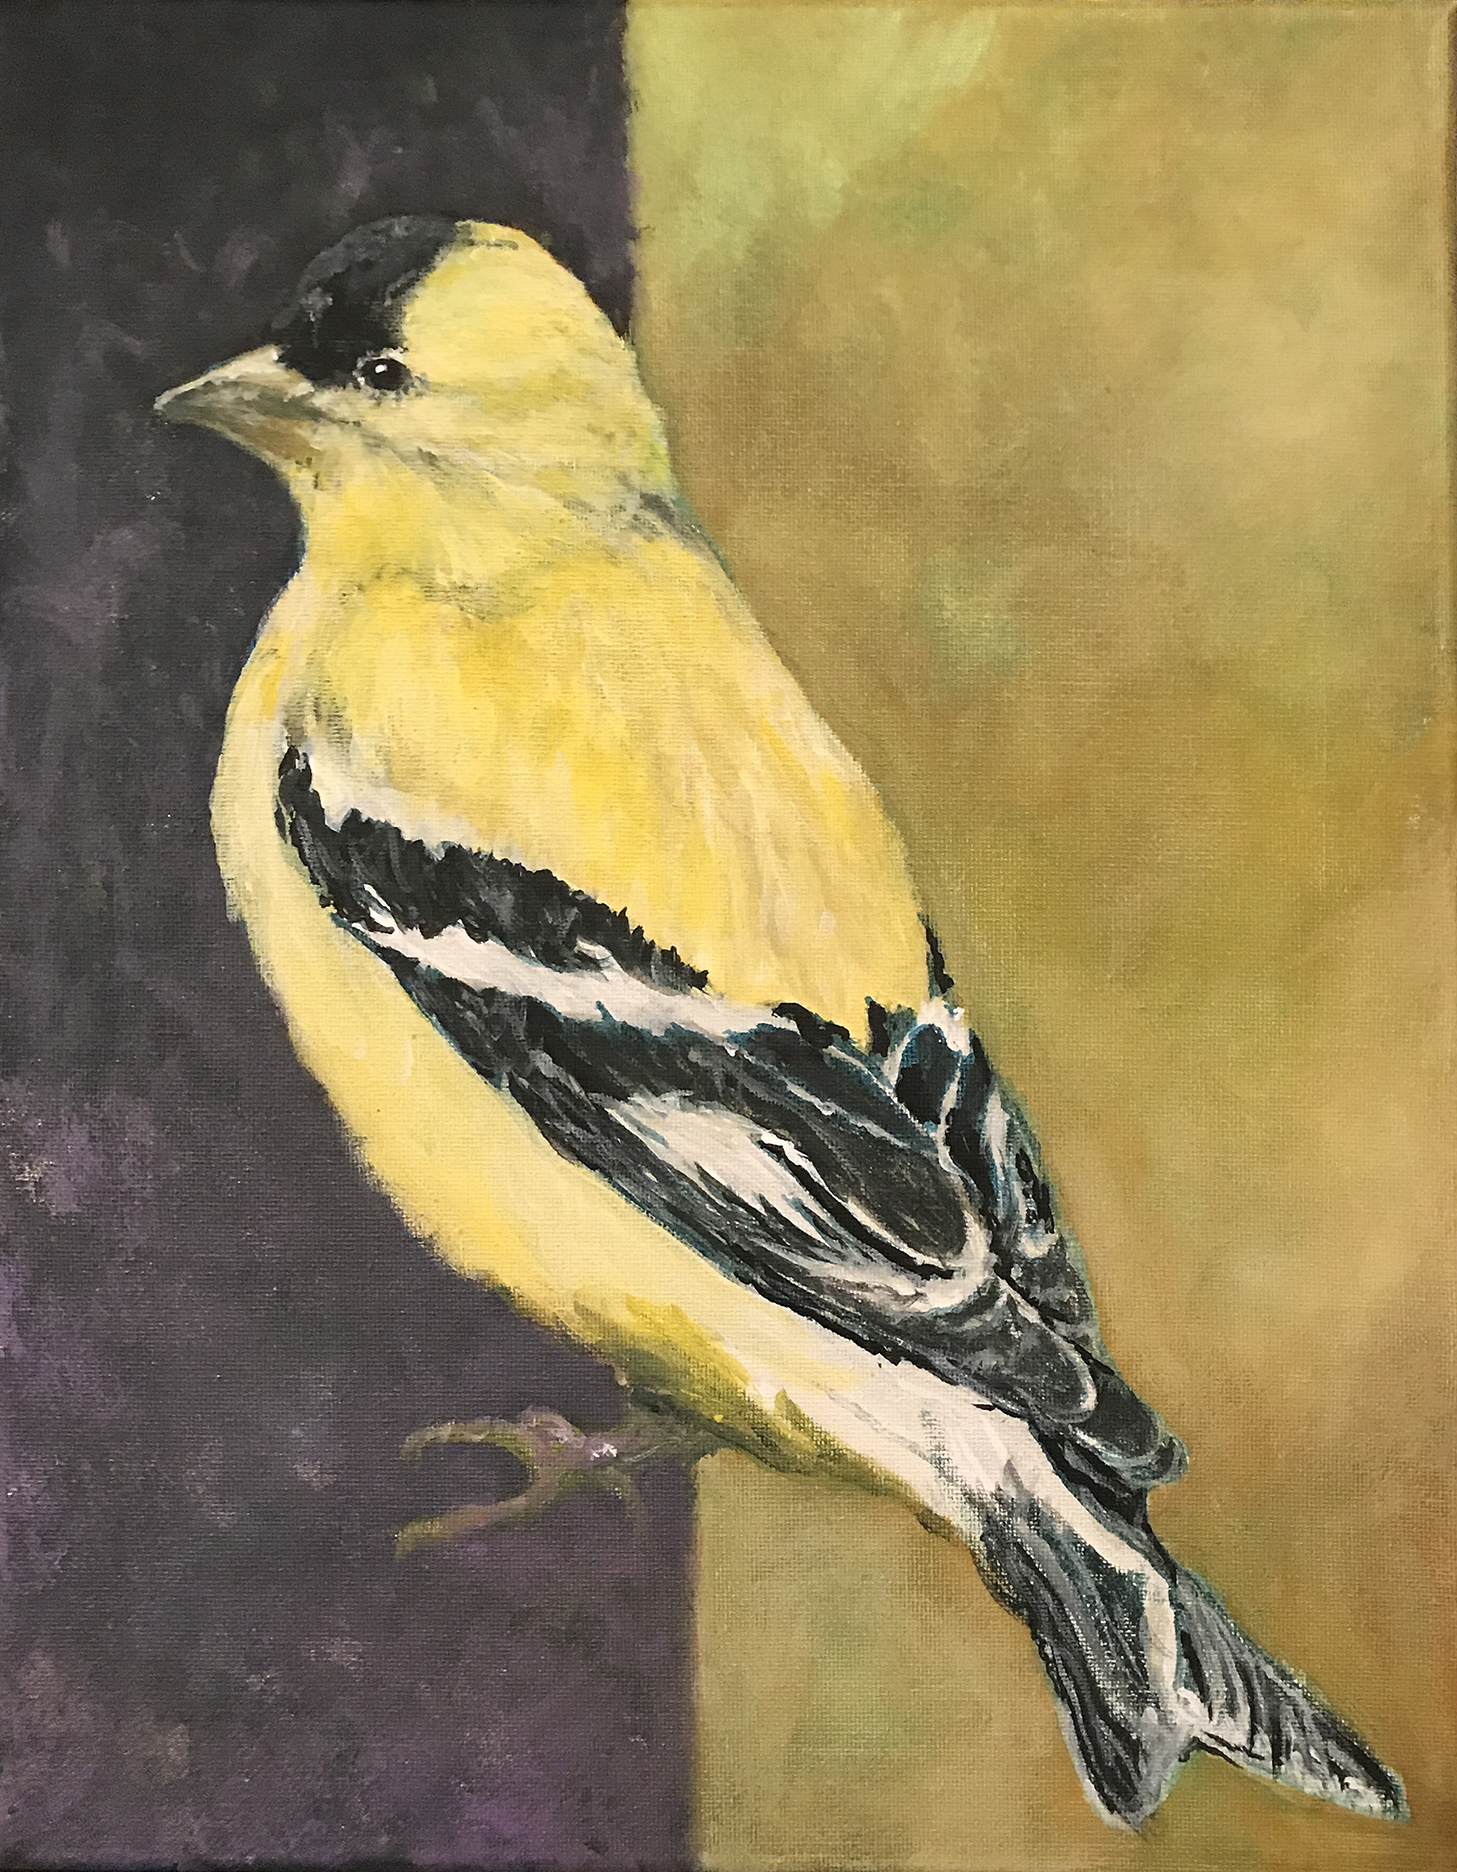 Painting of a bird native to Maryland, American Goldfinch